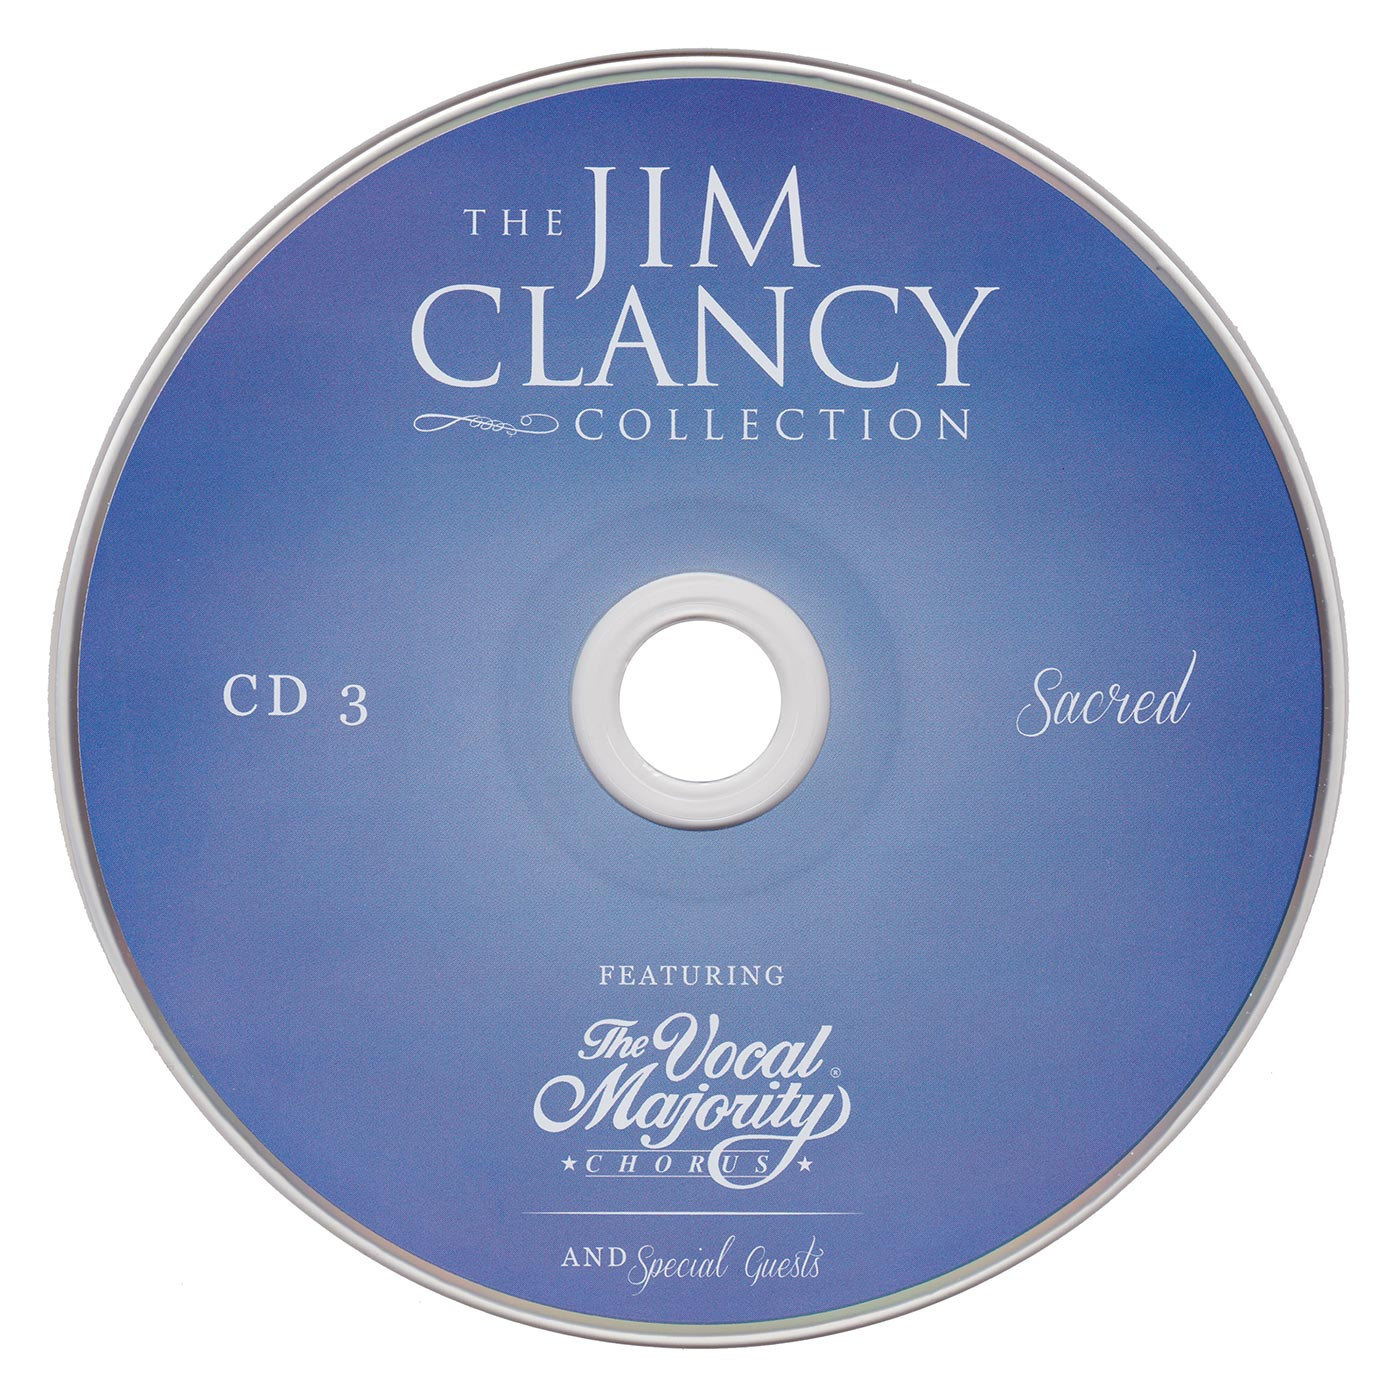 Disc Art CD 3 Jim Clancy Collection